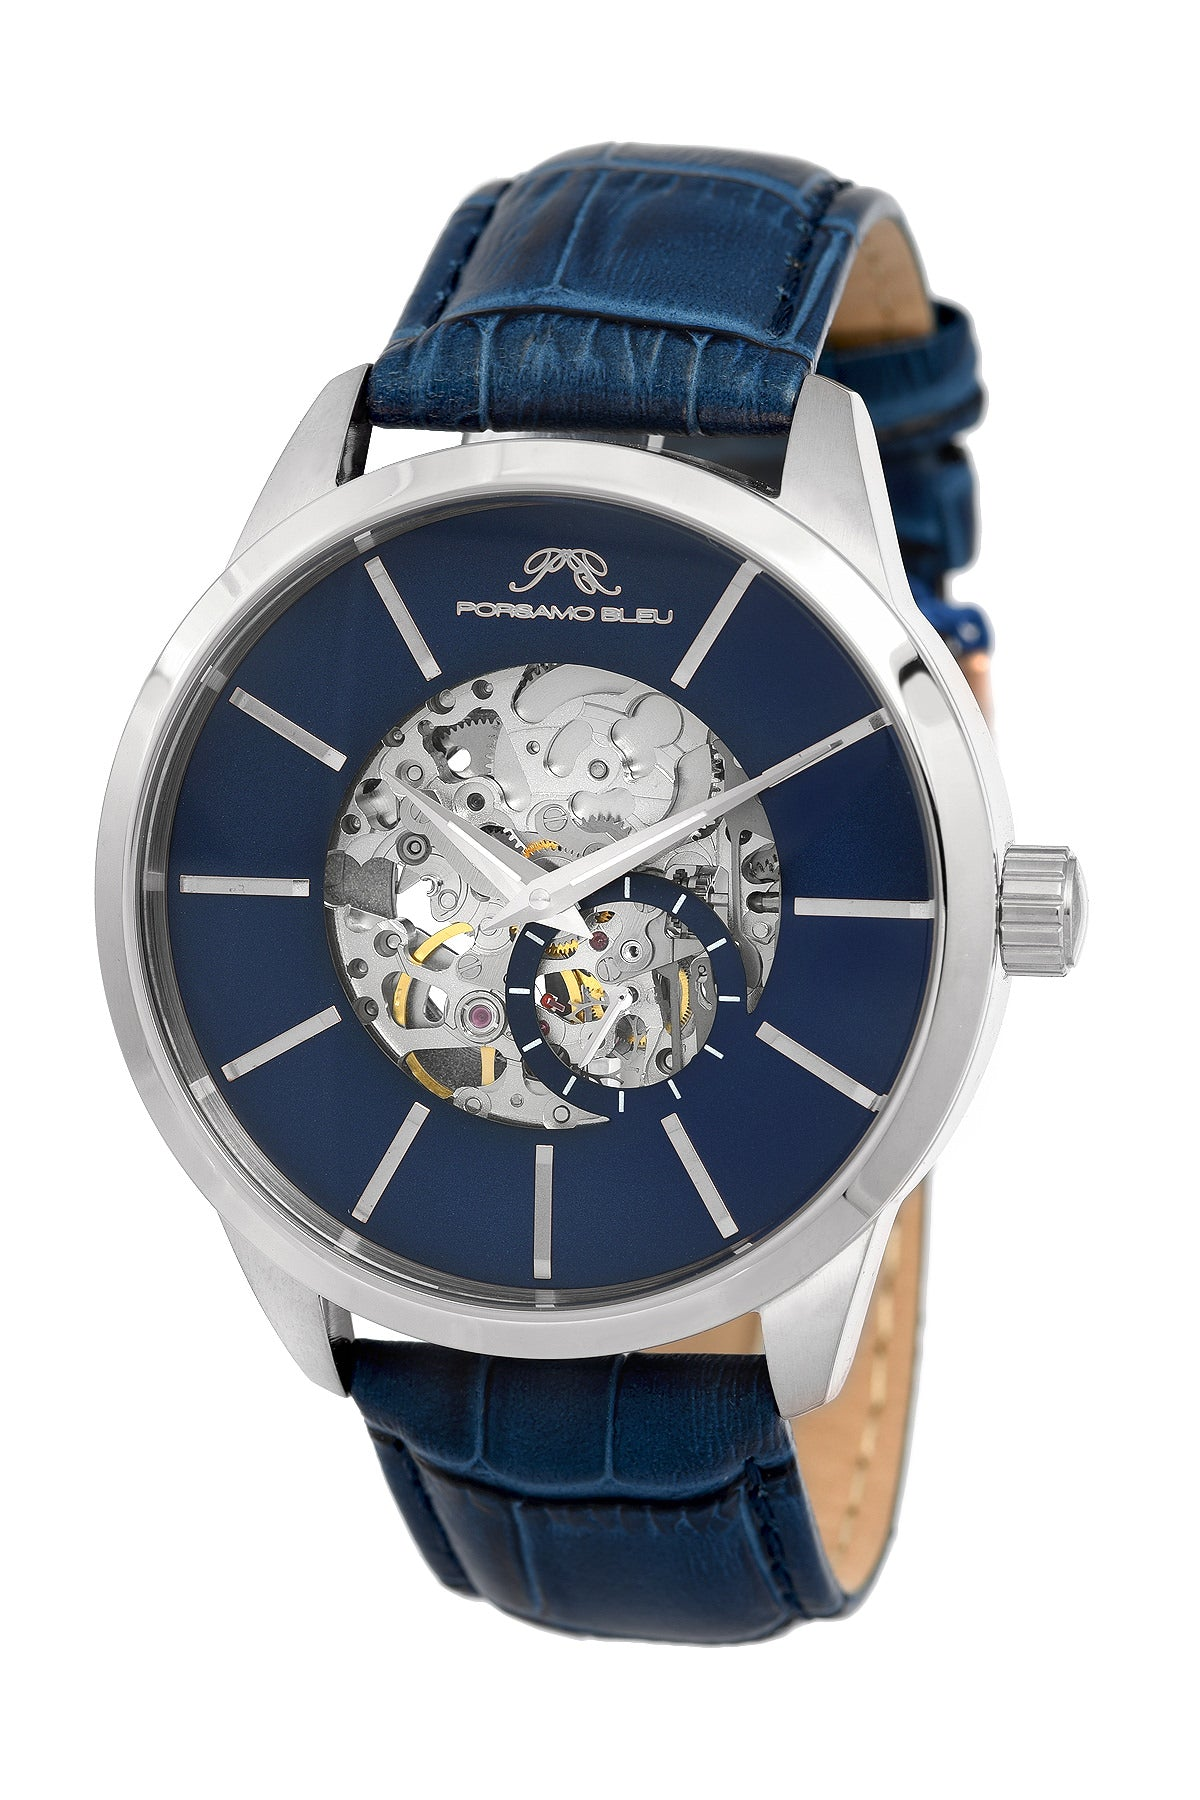 Porsamo Bleu Cassius luxury automatic men's watch, genuine leather band, silver, blue 802ACAL